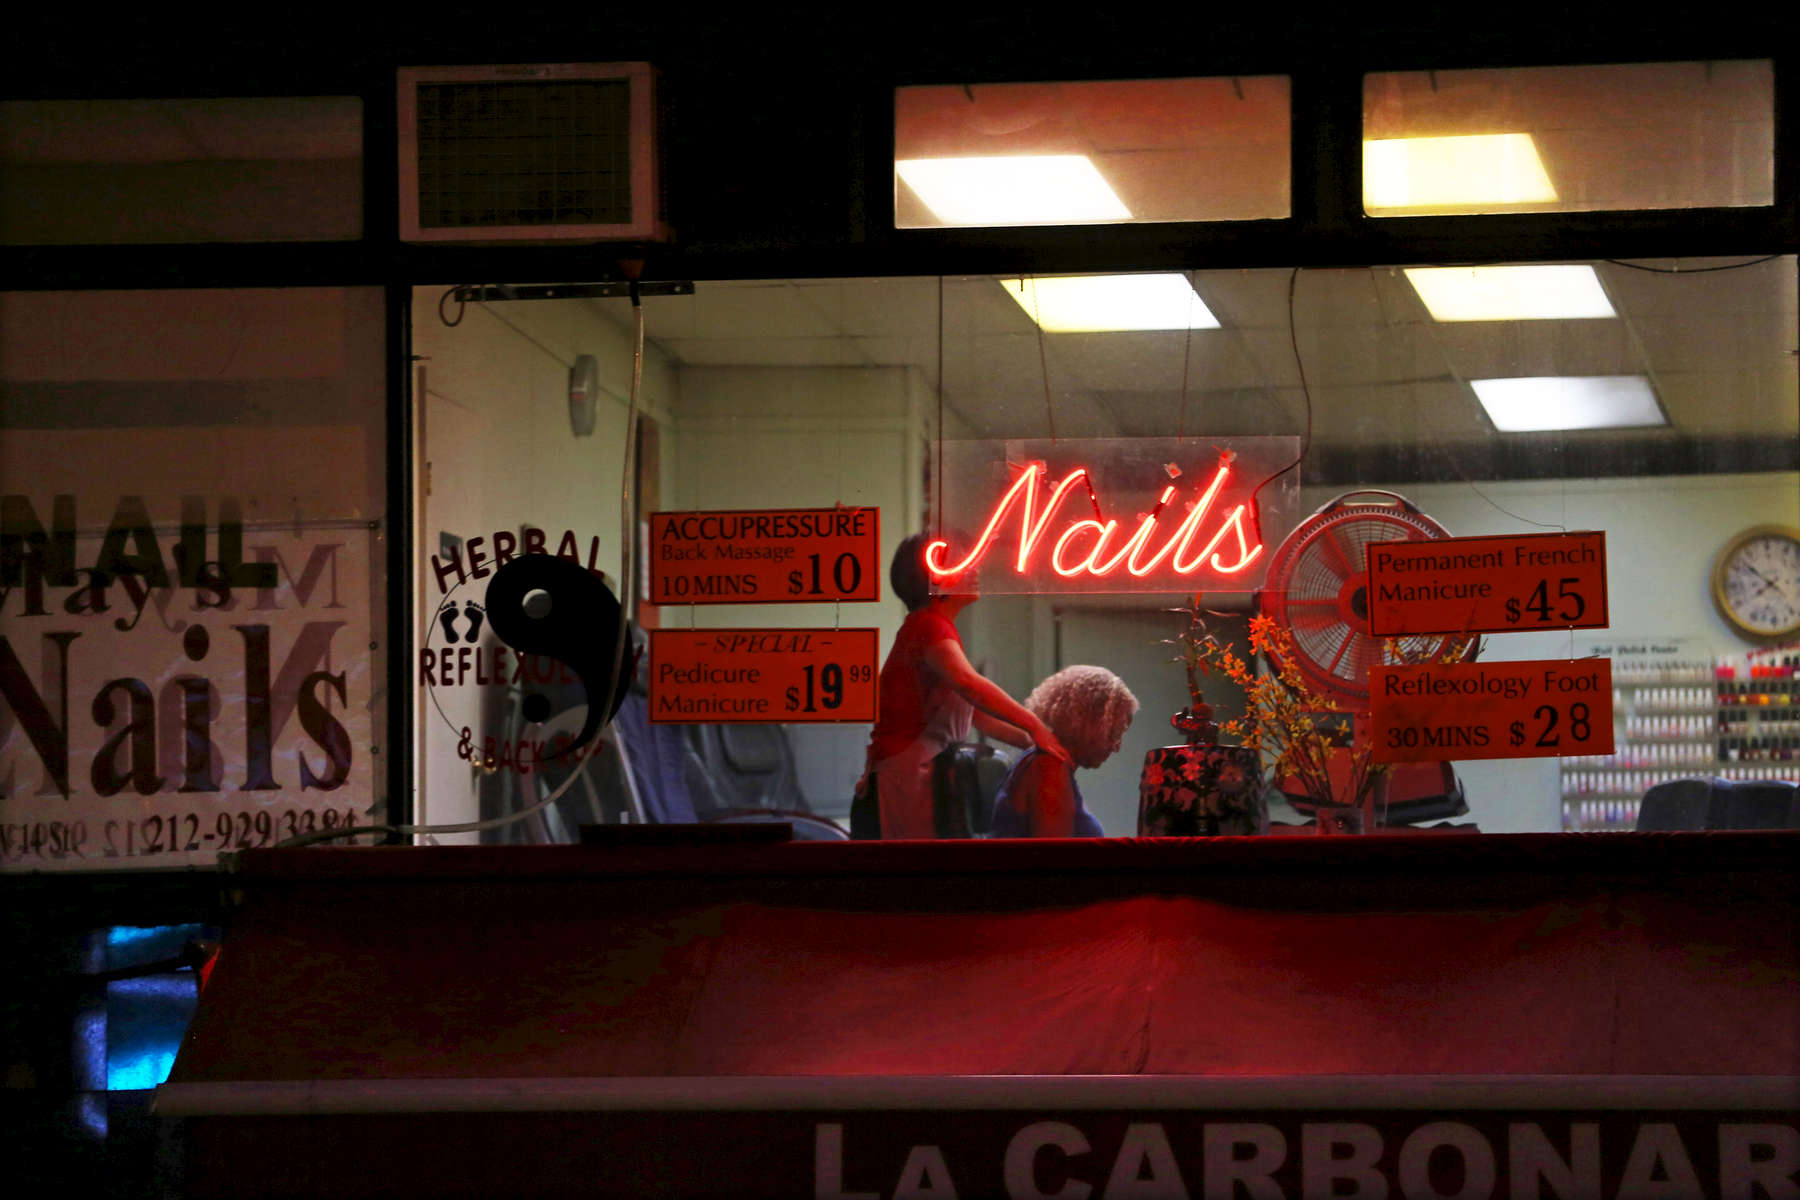 Late evening scene of a nail salons located alongW14th Street NYC. A customer gets a neck massage while her nails dry.